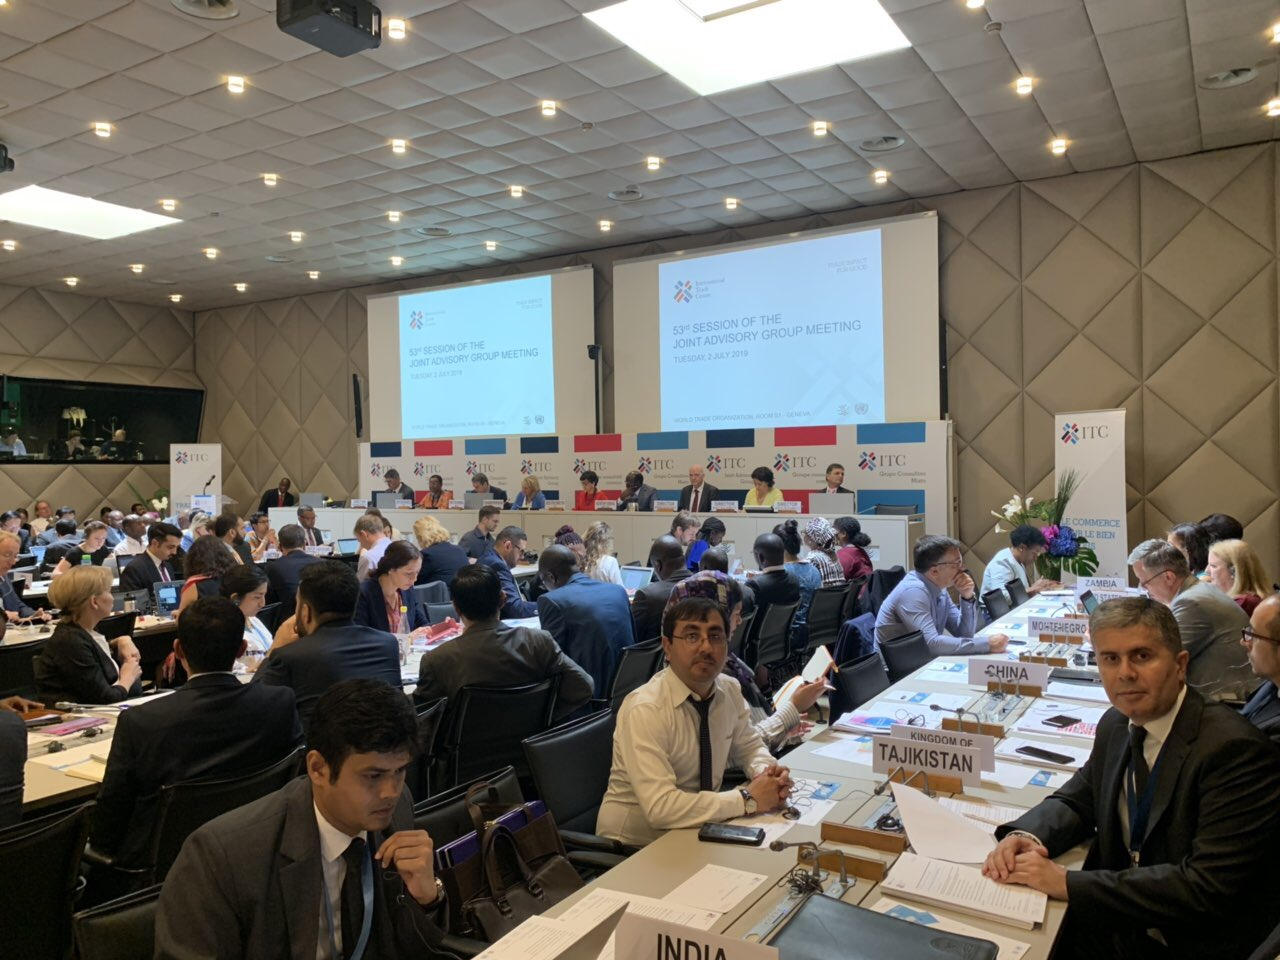 Introduction of the Republic of Tajikistan's trade sector achievements in the 53rd annual session of the Joint Advisory Group of International Trade Centre